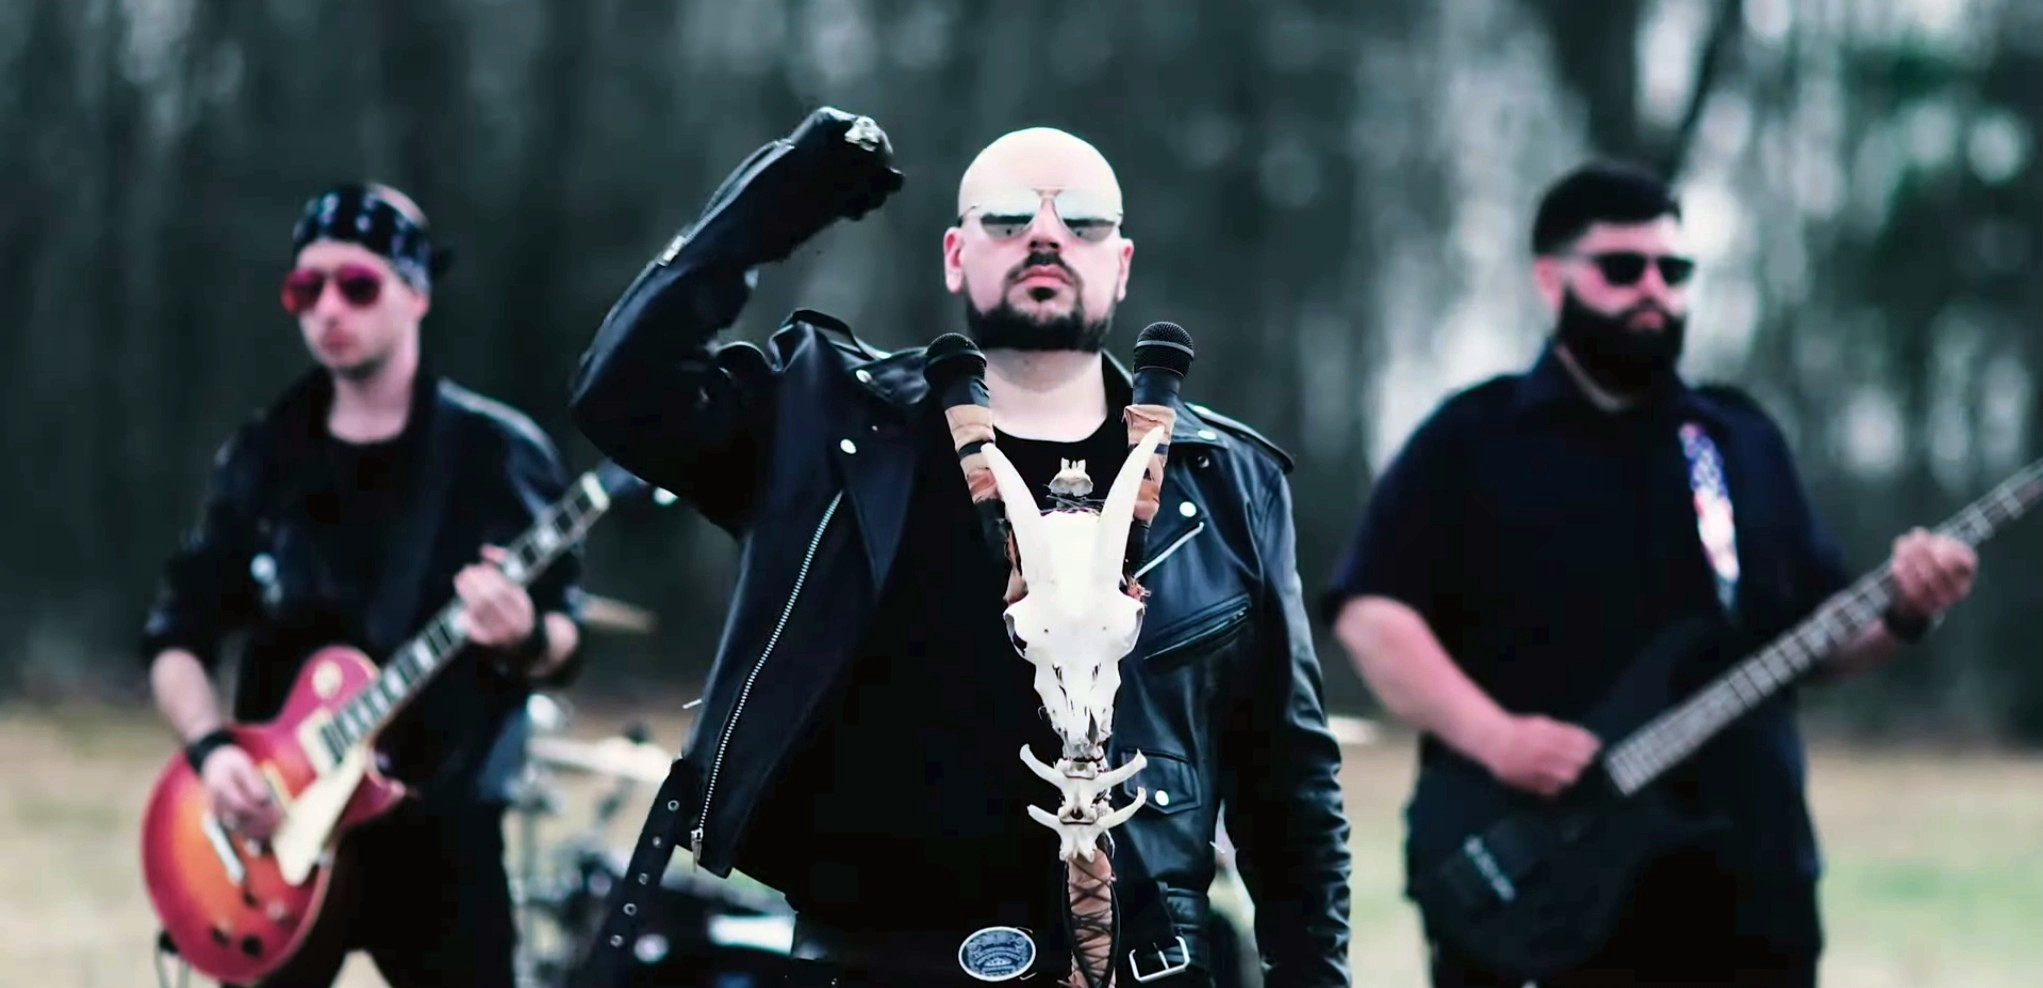 VIDEO PREMIERE: Exeter heavy metal band Royal Hell summons a